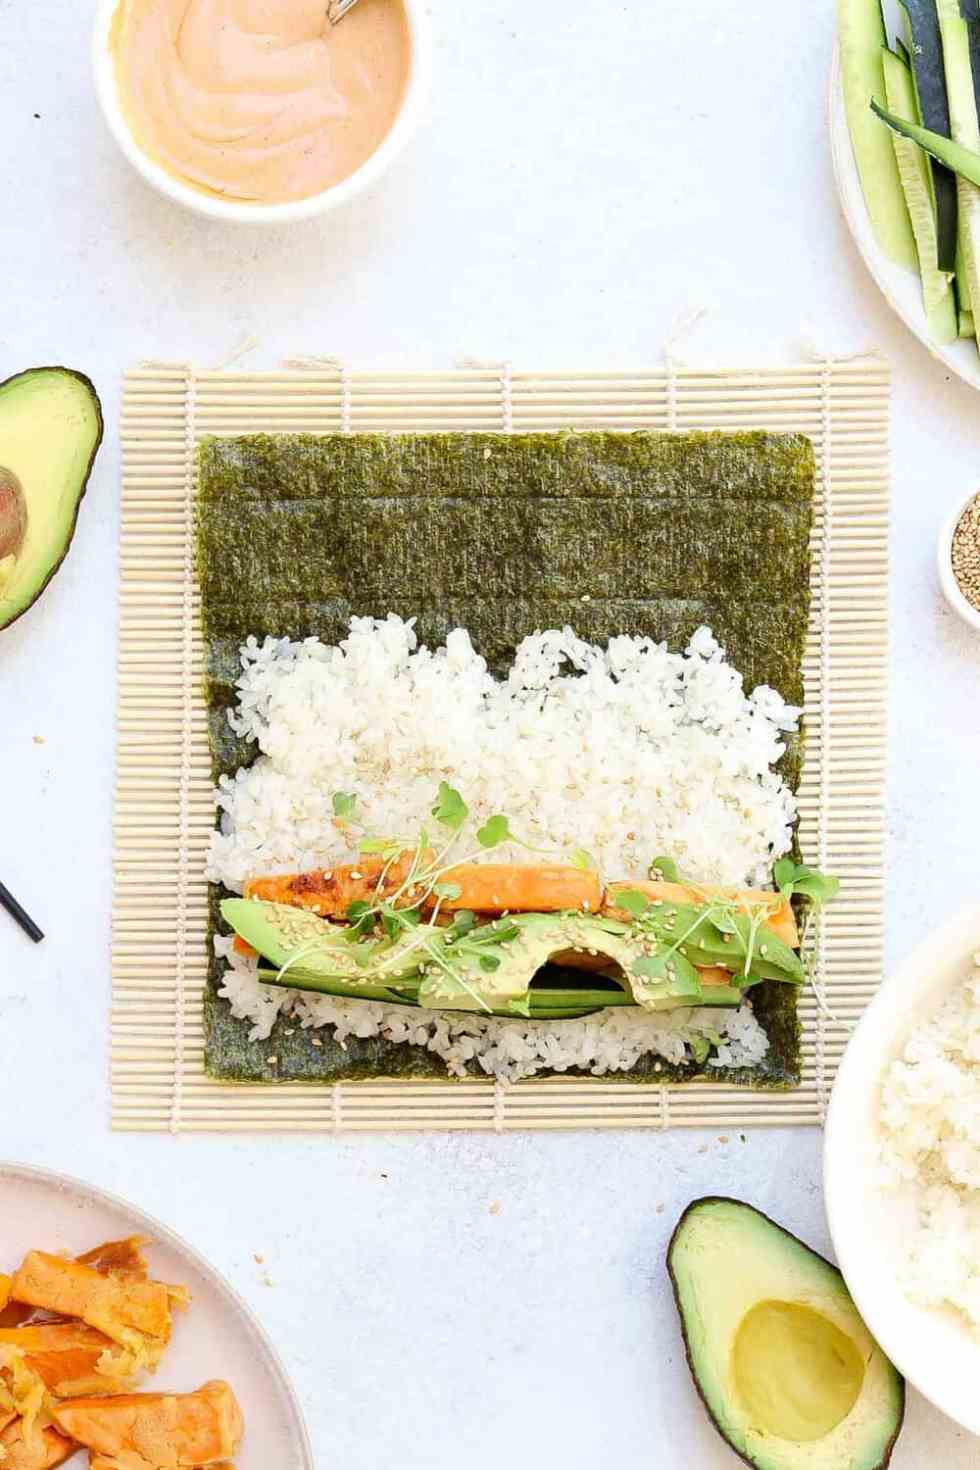 Avocado and sweet potato on top of white rice and nori ready to be rolled up.